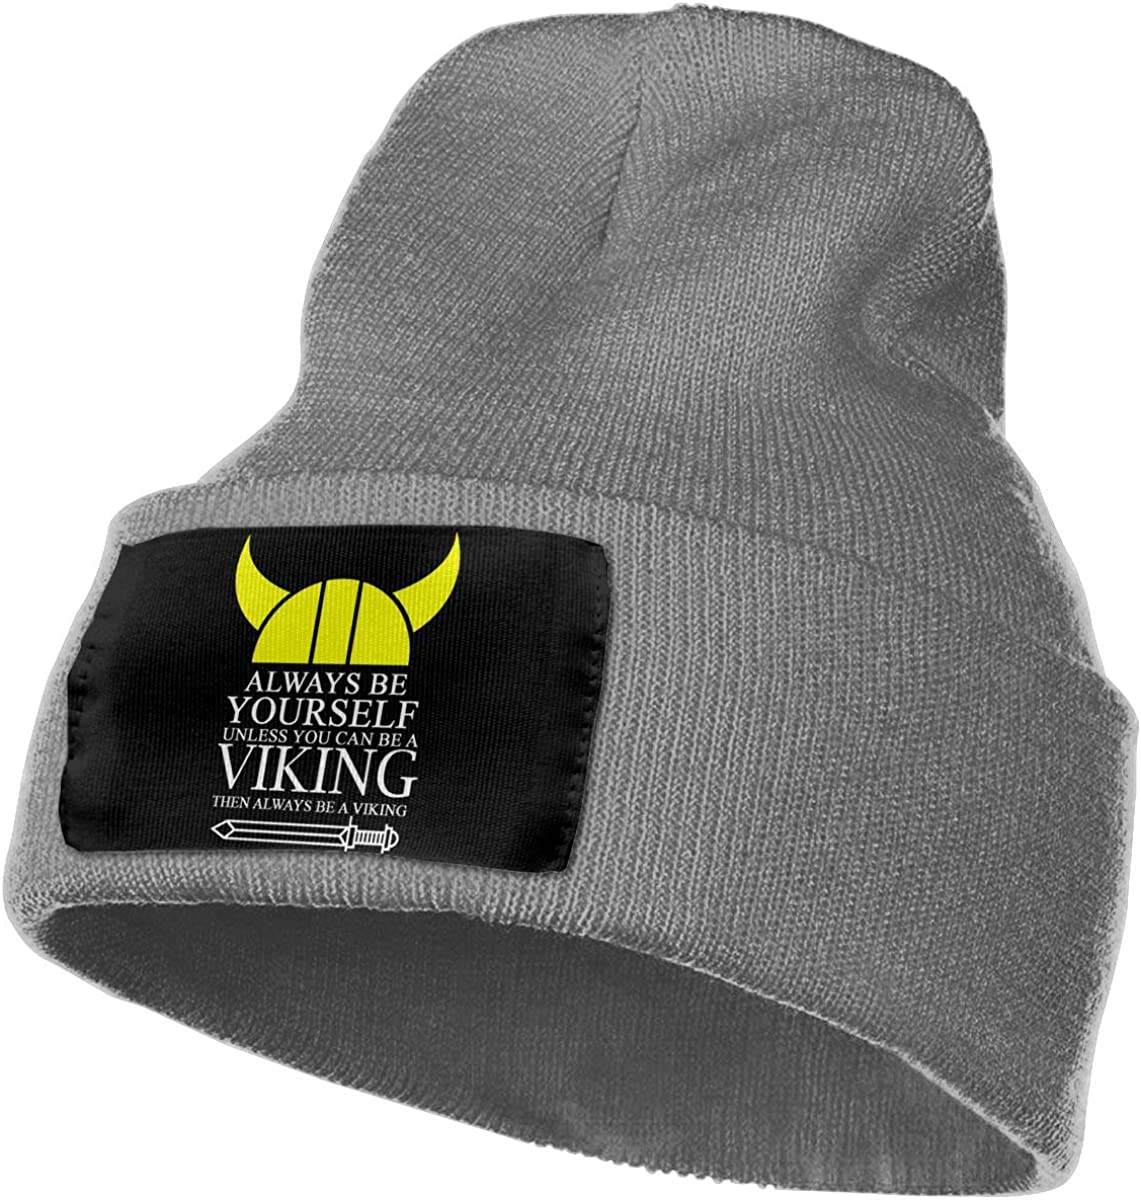 Always Be Yourself Unless You Can Be A Viking Men/&Women Warm Winter Knit Plain Beanie Hat Skull Cap Acrylic Knit Cuff Hat